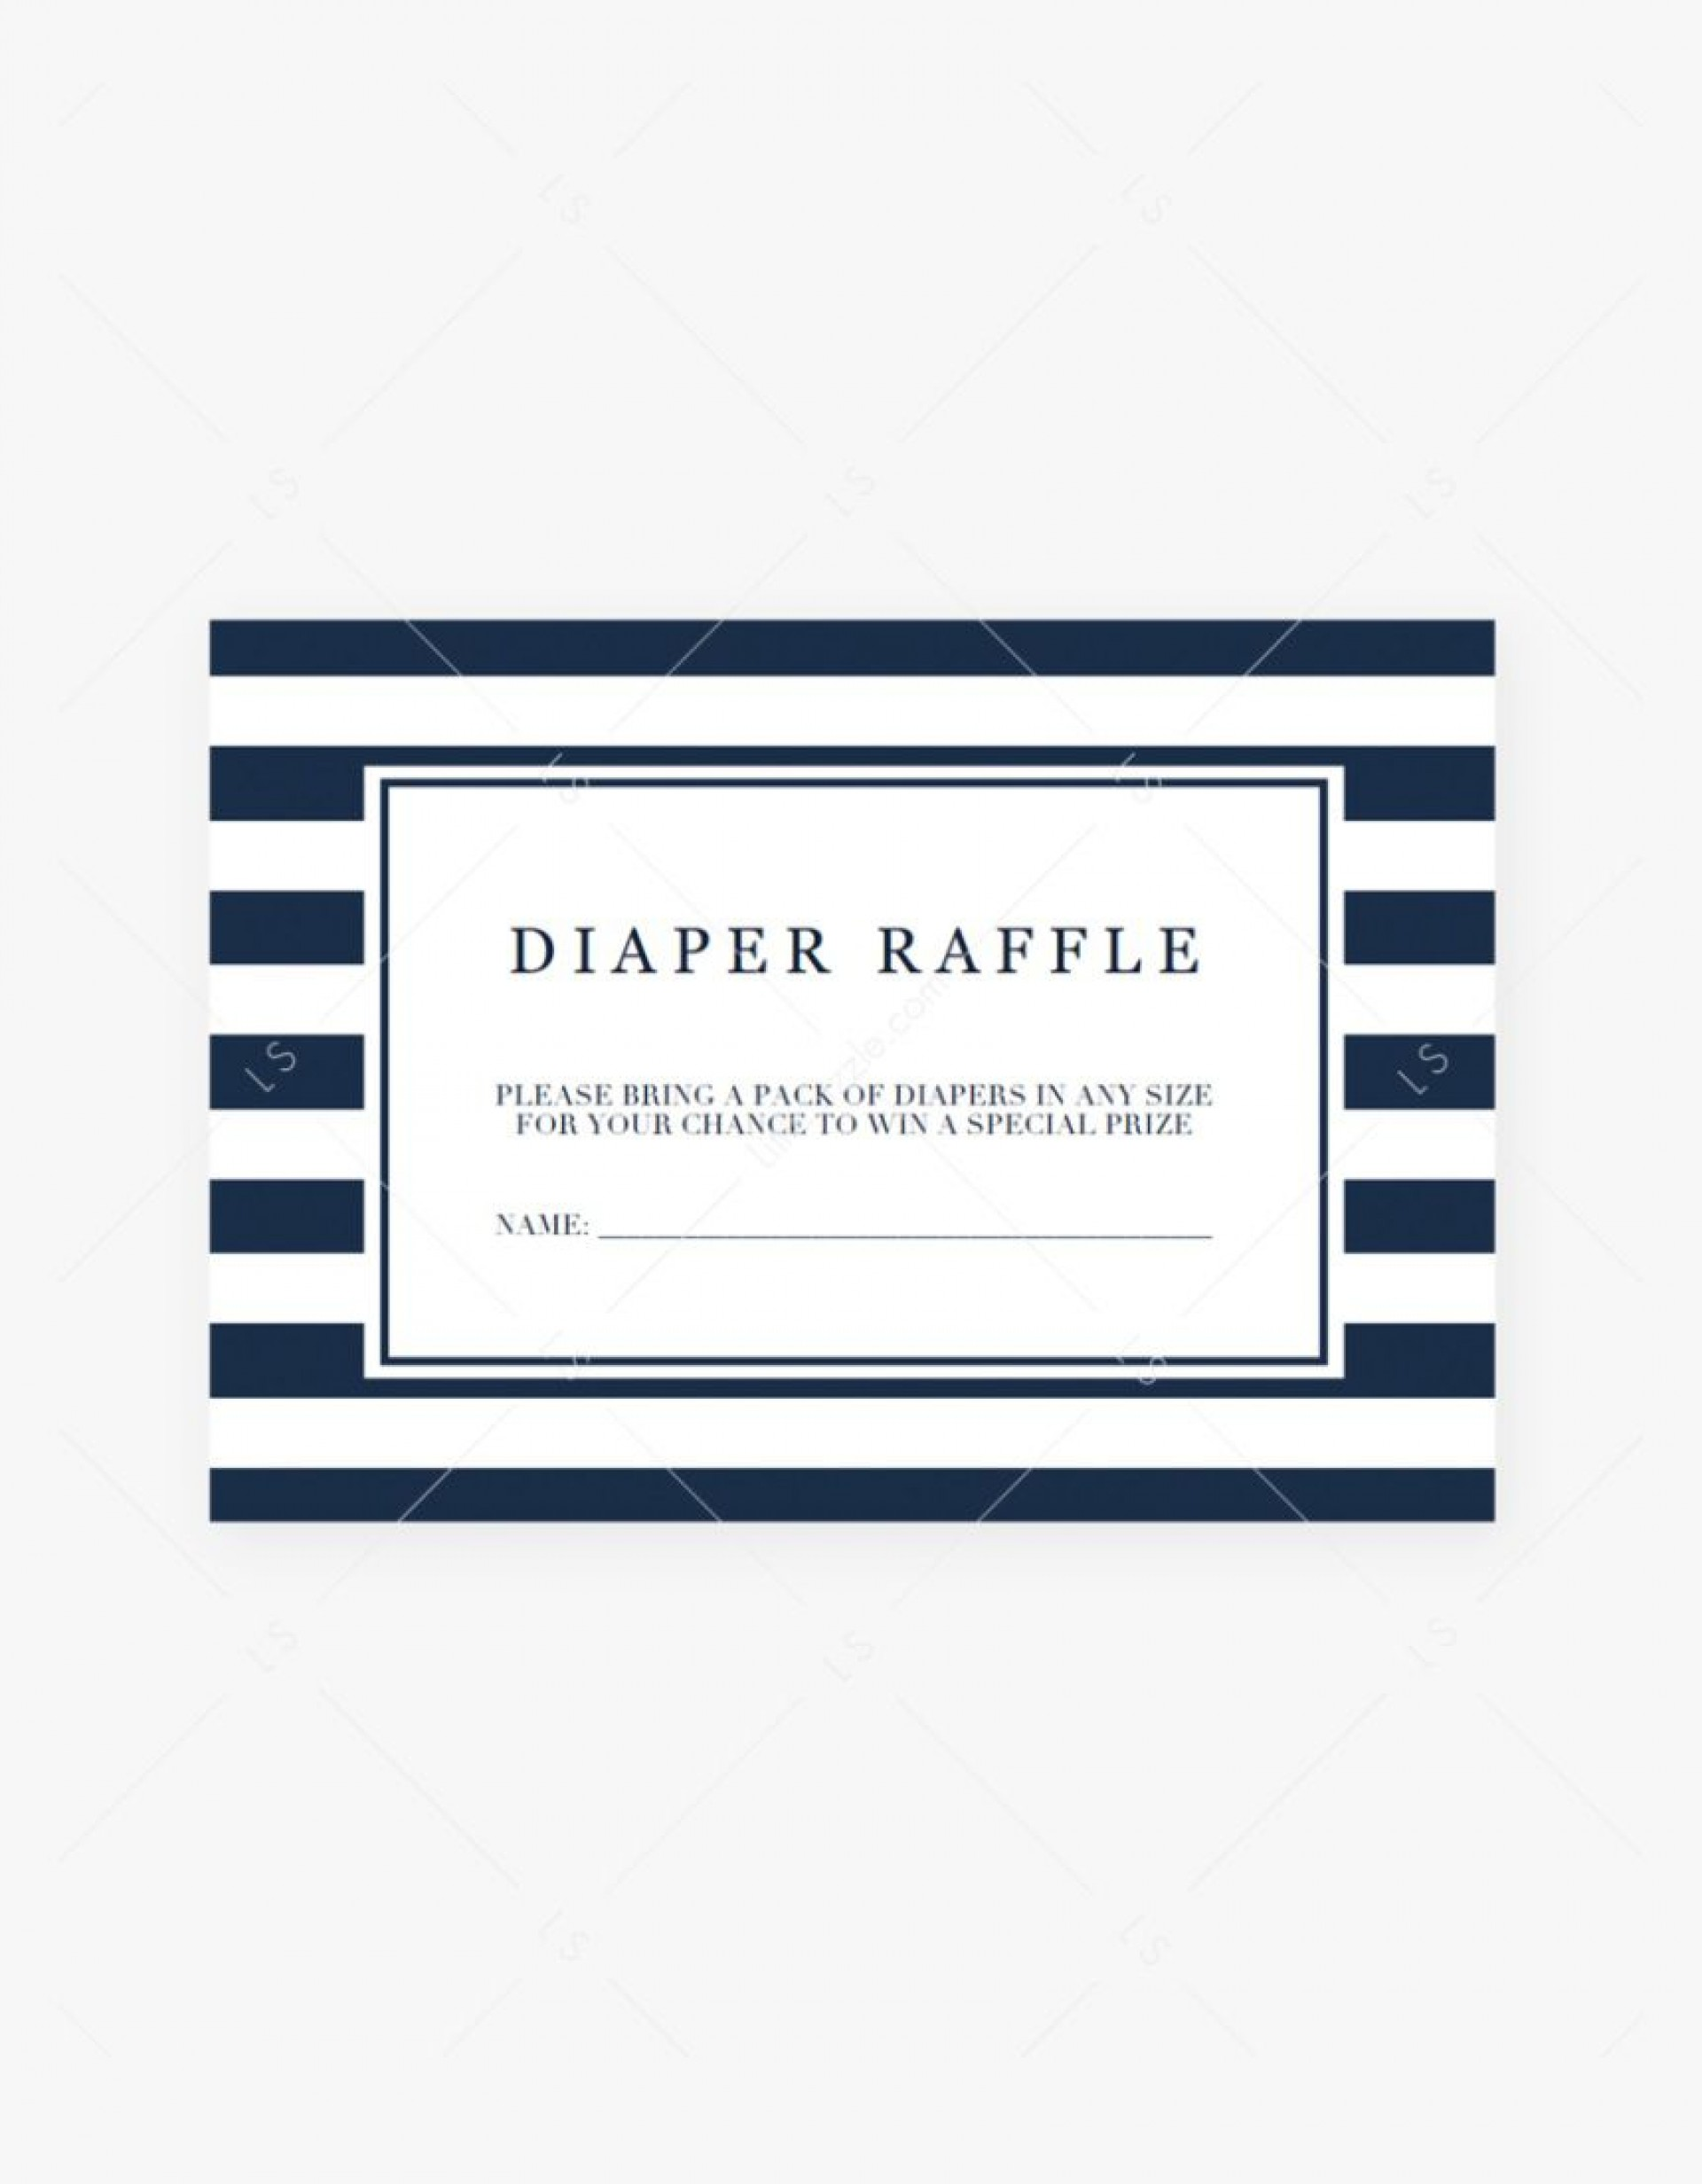 000 Formidable Diaper Raffle Ticket Template Concept  Boy Free Printable Print Black And White1920